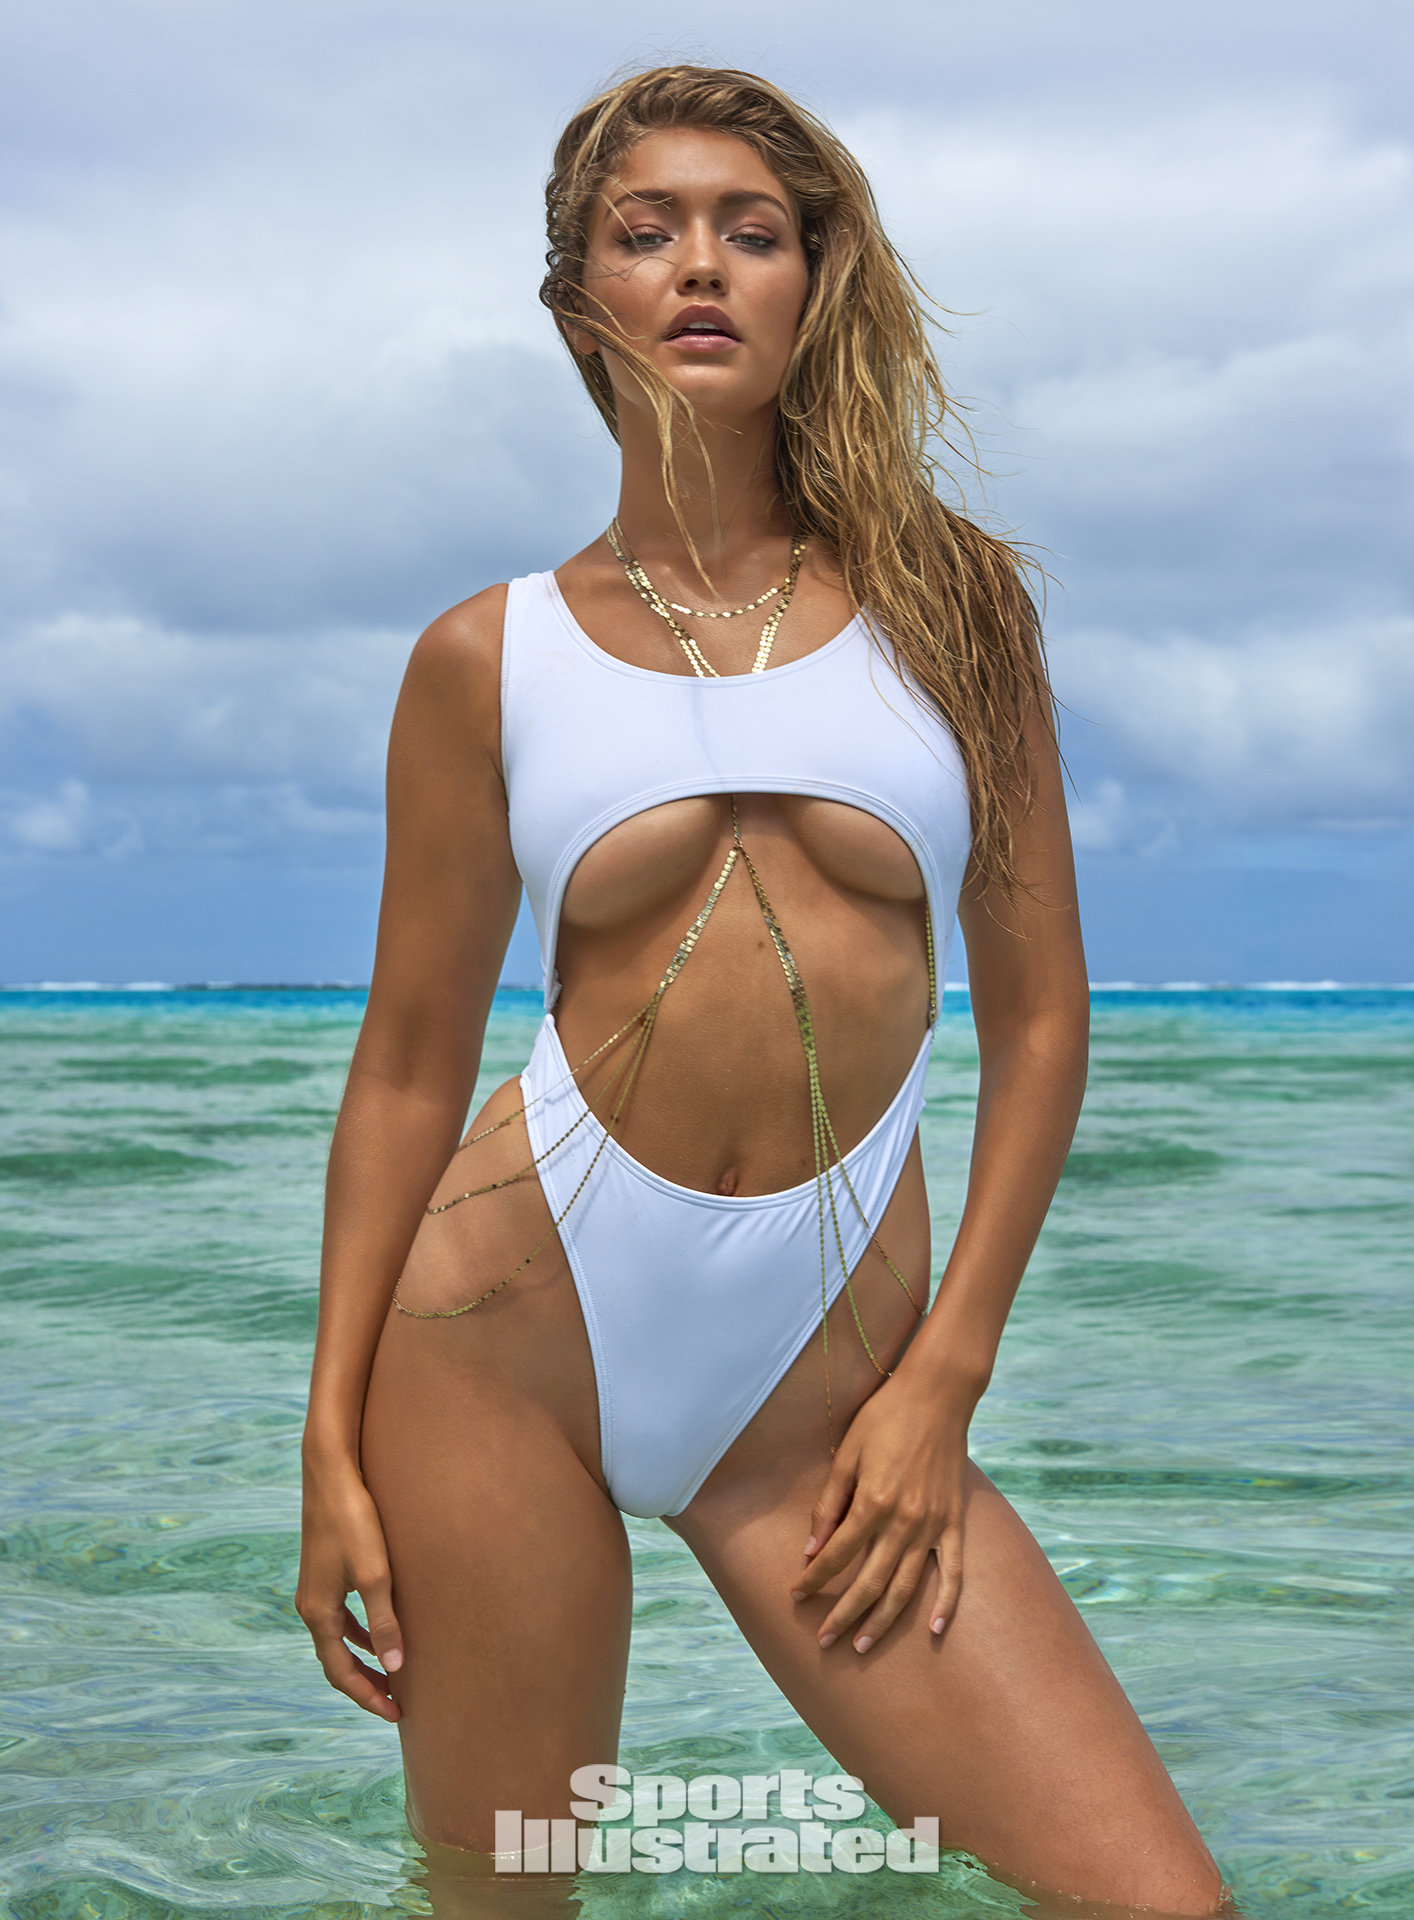 Gigi Hadid was photographed by Yu Tsai in The Islands Of Tahiti. Swimsuit by Lola And Lamar.